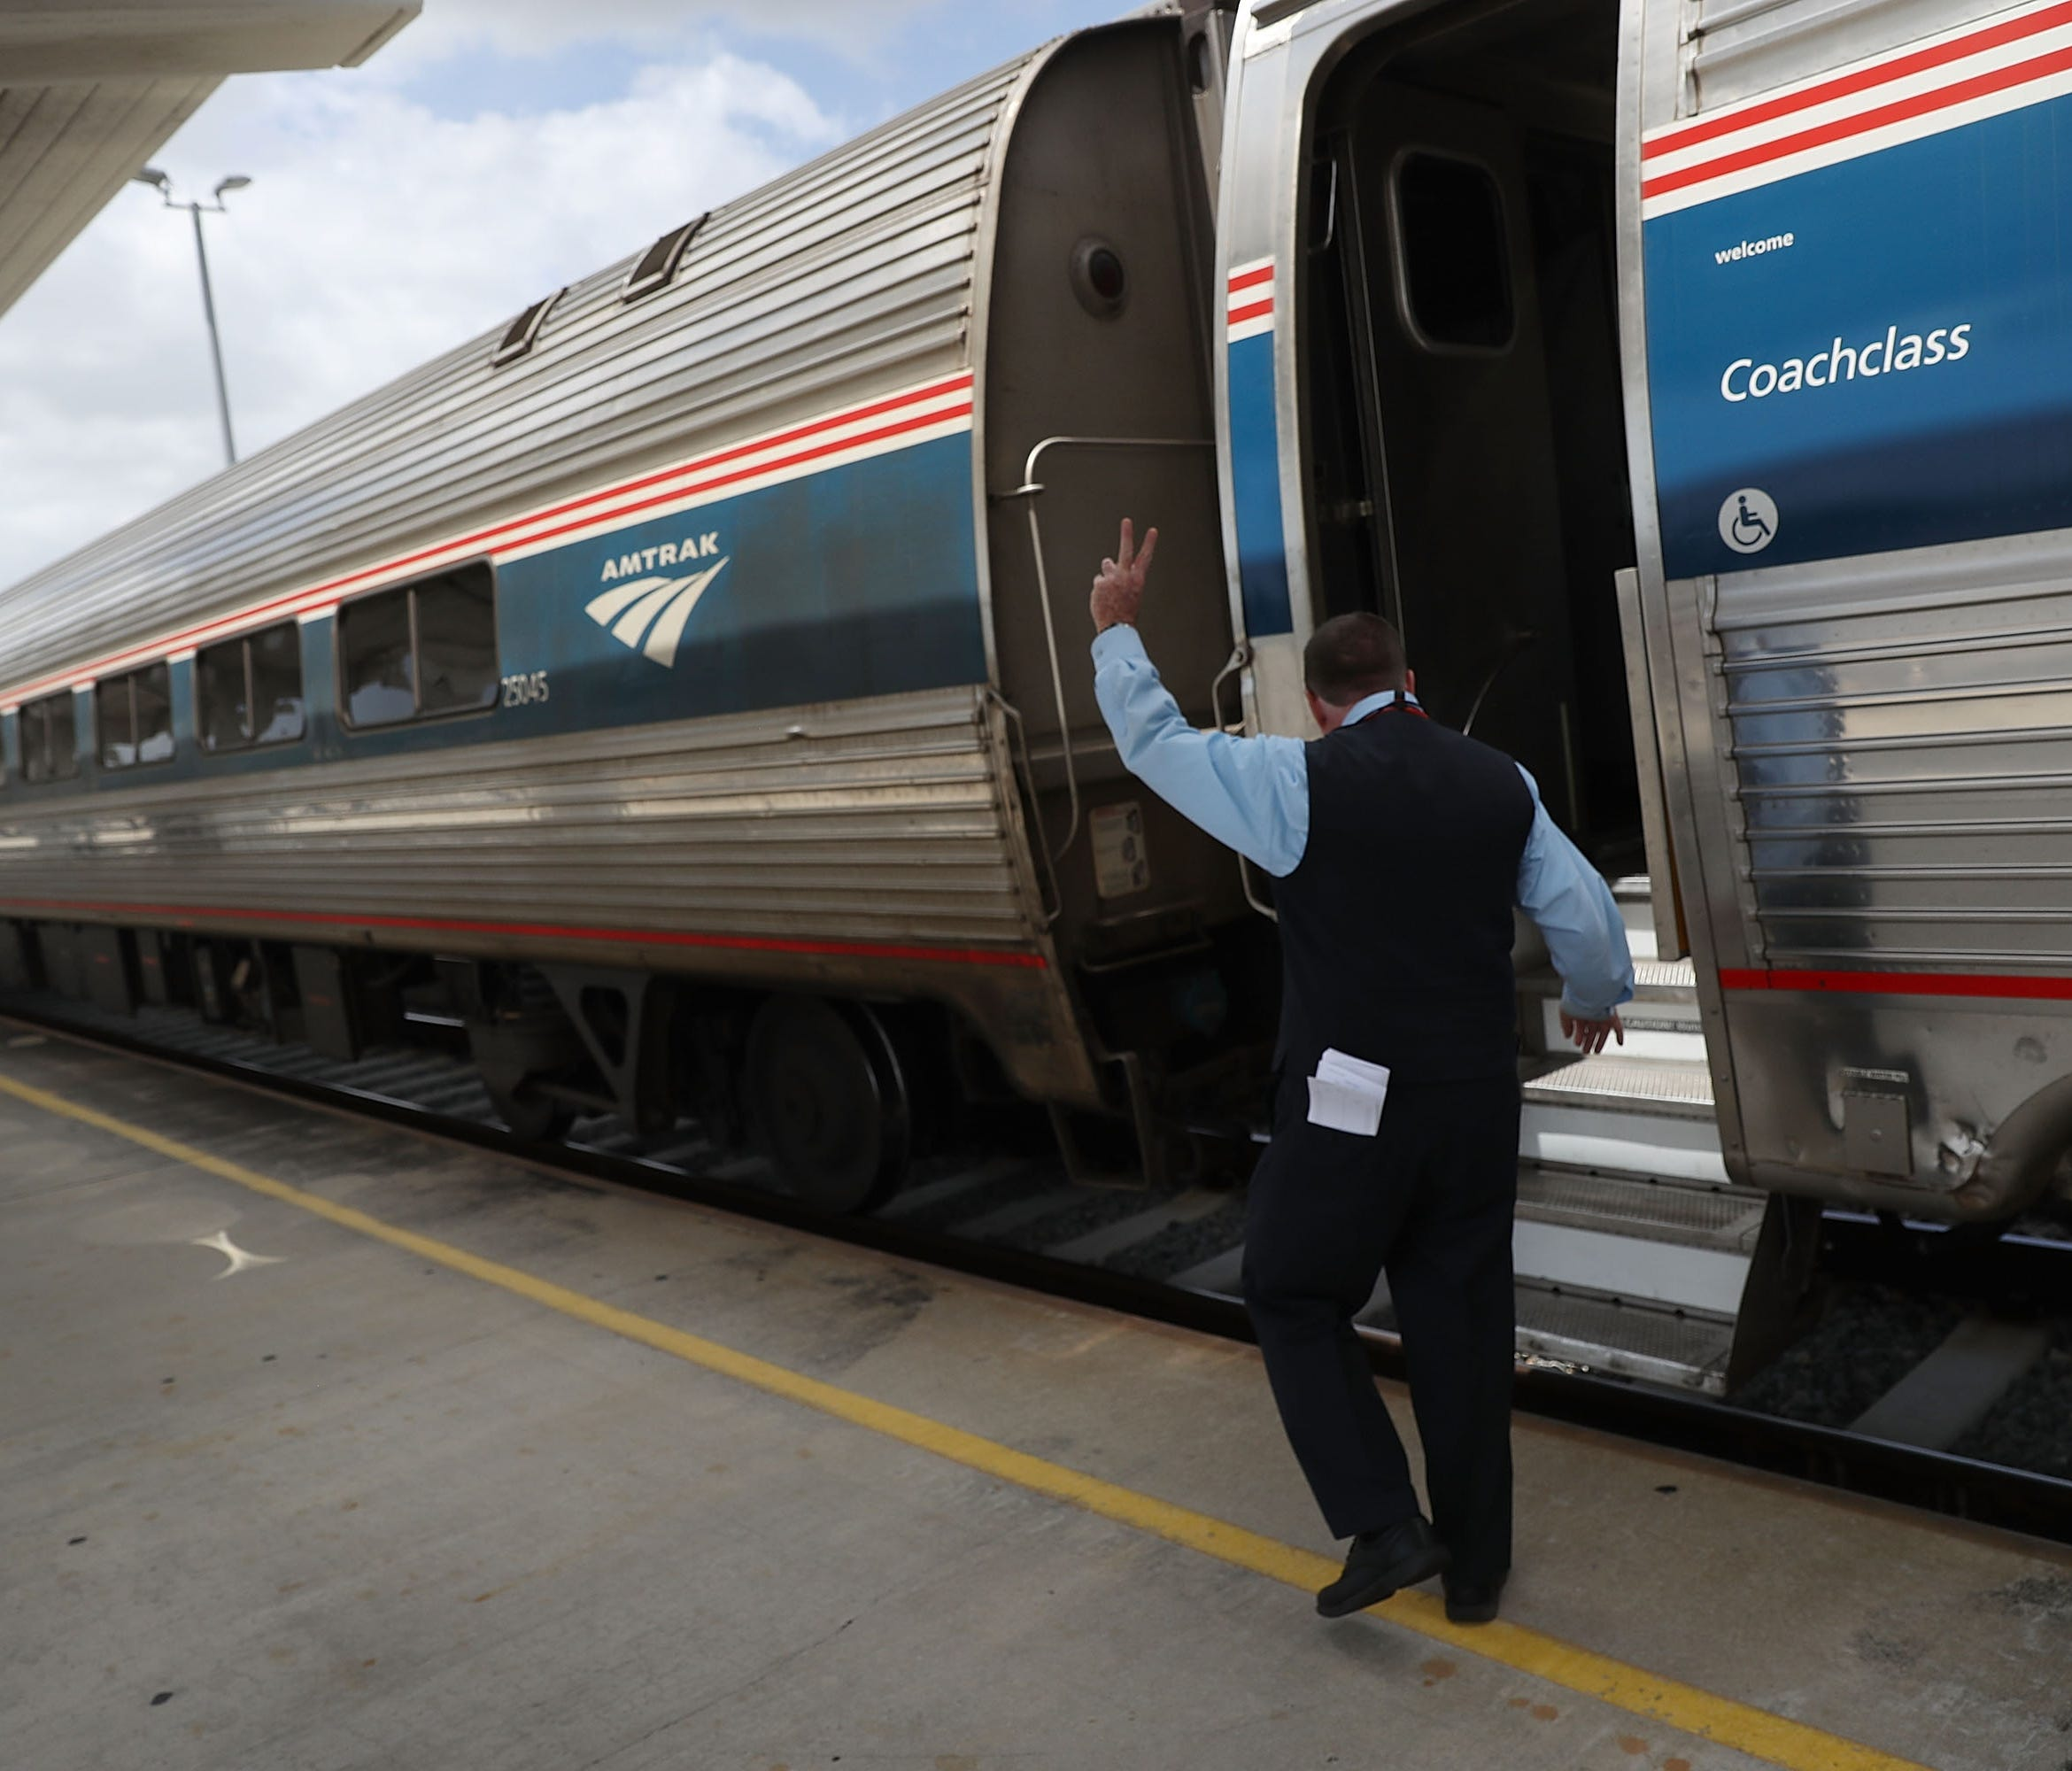 Those who love riding the rails saw their travel plans thrown off track last year when President Trump's budget called for drastic cuts to Amtrak's budget and elimination of service to more than 220 cities and communities in 23 states nationwide, inc